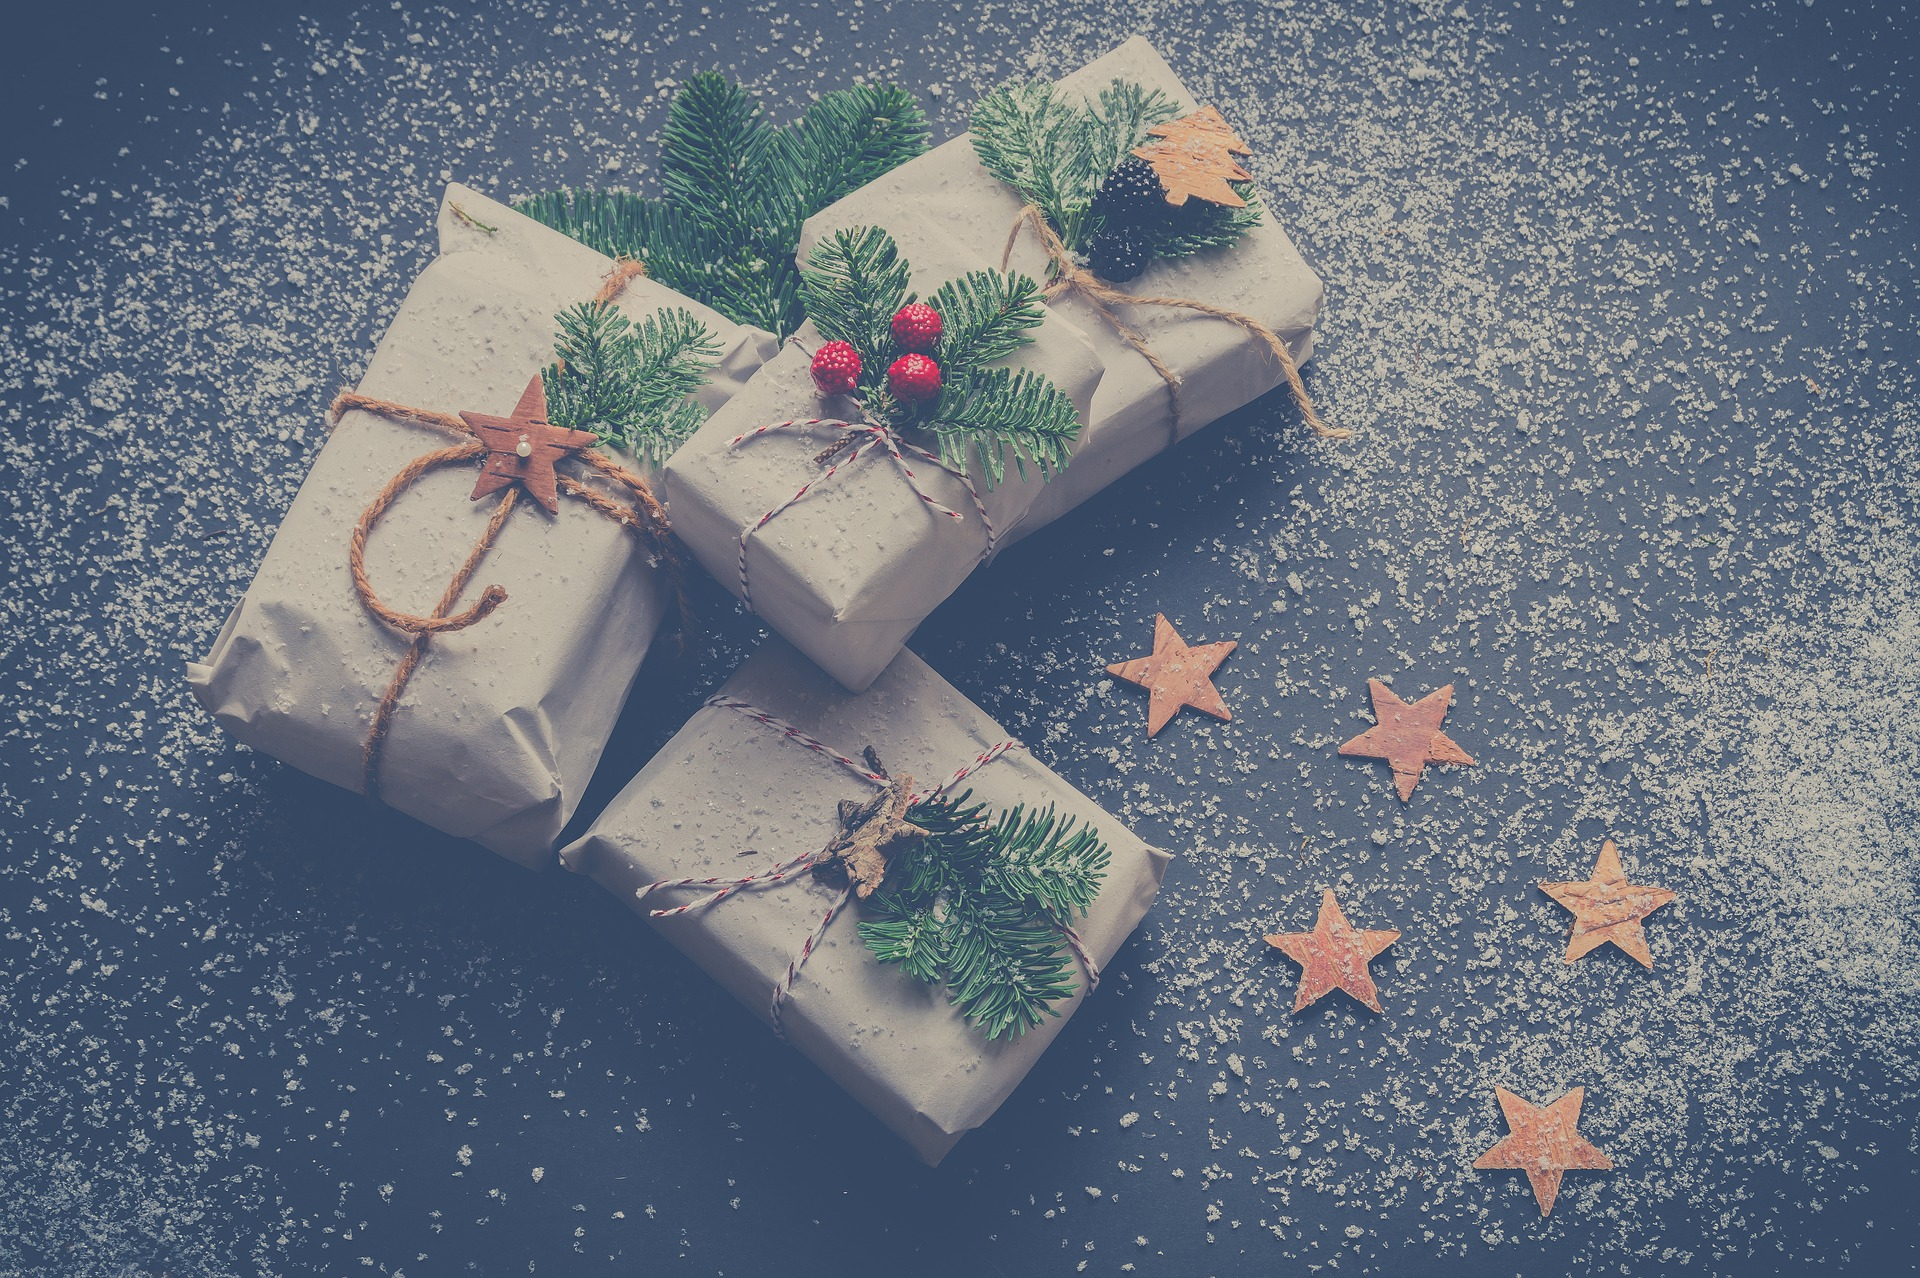 Gifts that are fun are not always practical. While everyone enjoys a new toy, there are great gifts that can also improve our well being.